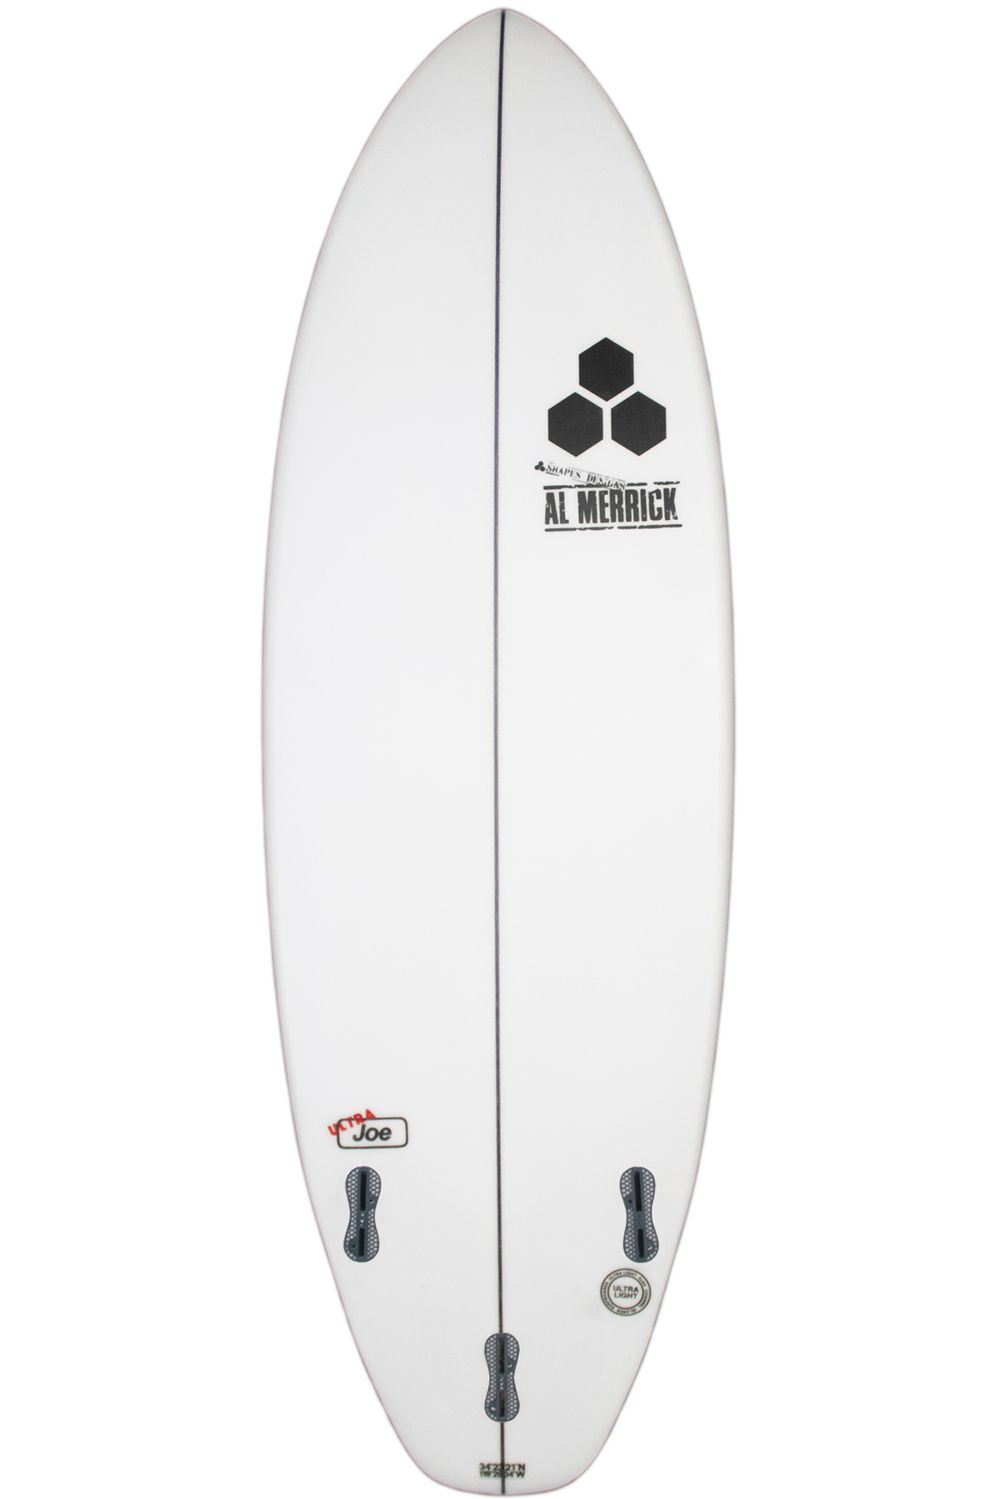 Prancha Surf Al Merrick ULTRA JOE 5'5 Squash Tail - White FCS II 5ft5